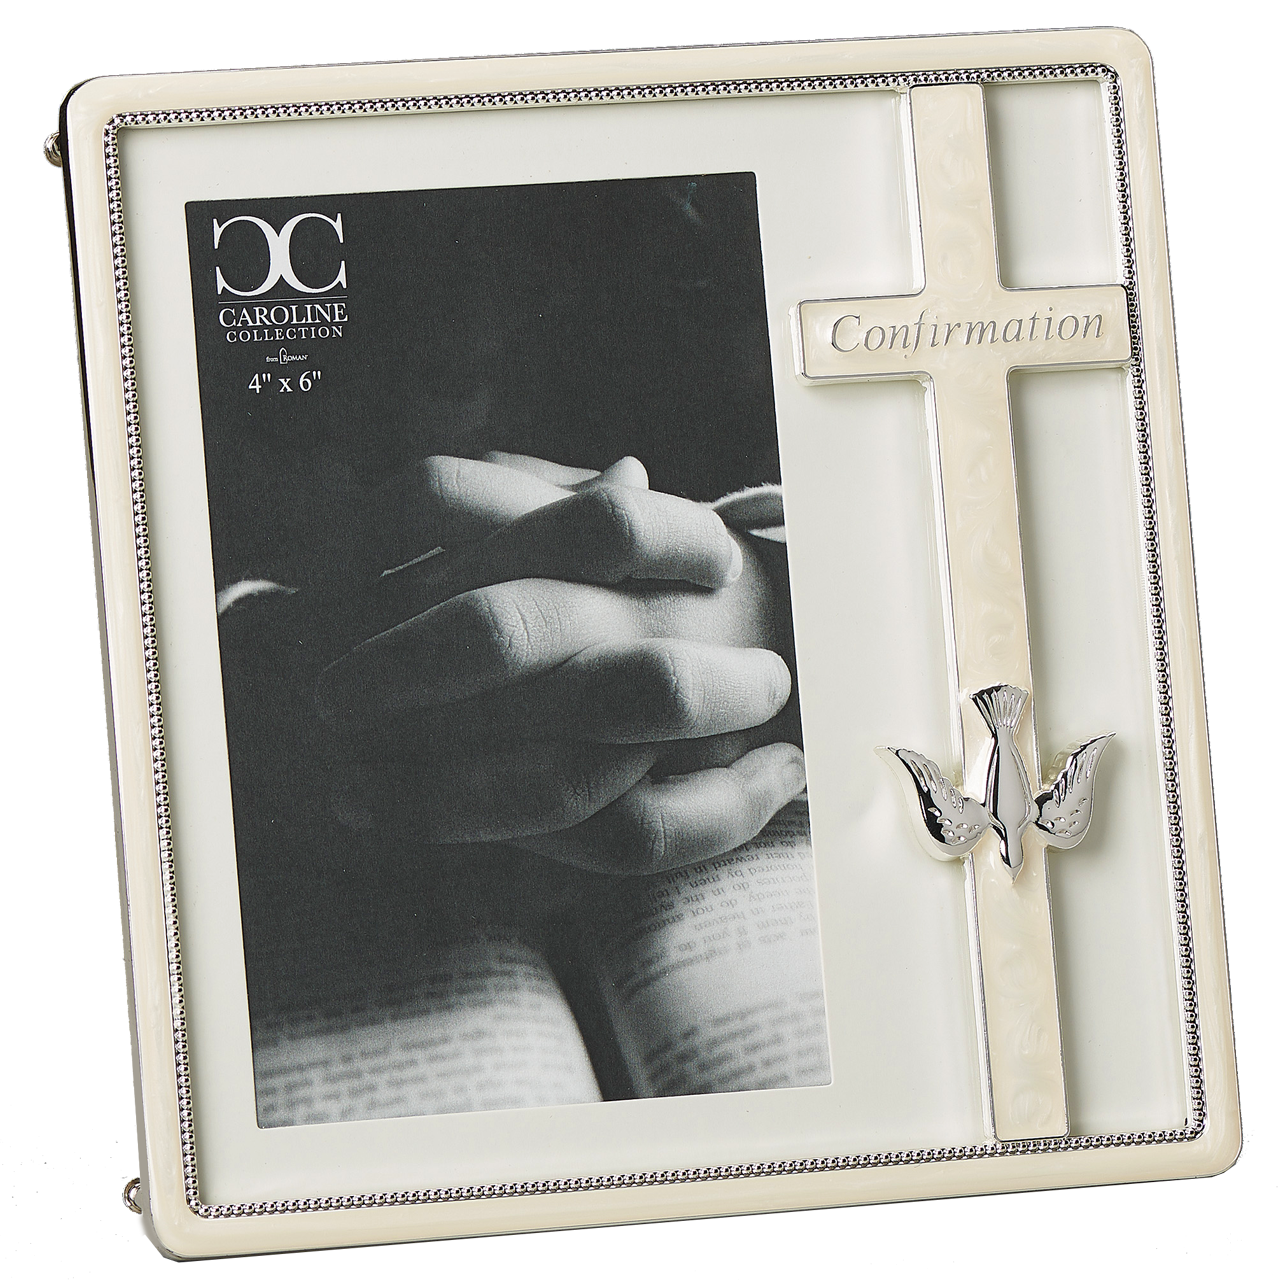 White Confirmation Day Photo Frame with Silver Dove Symbol Picture Keepsake Gift